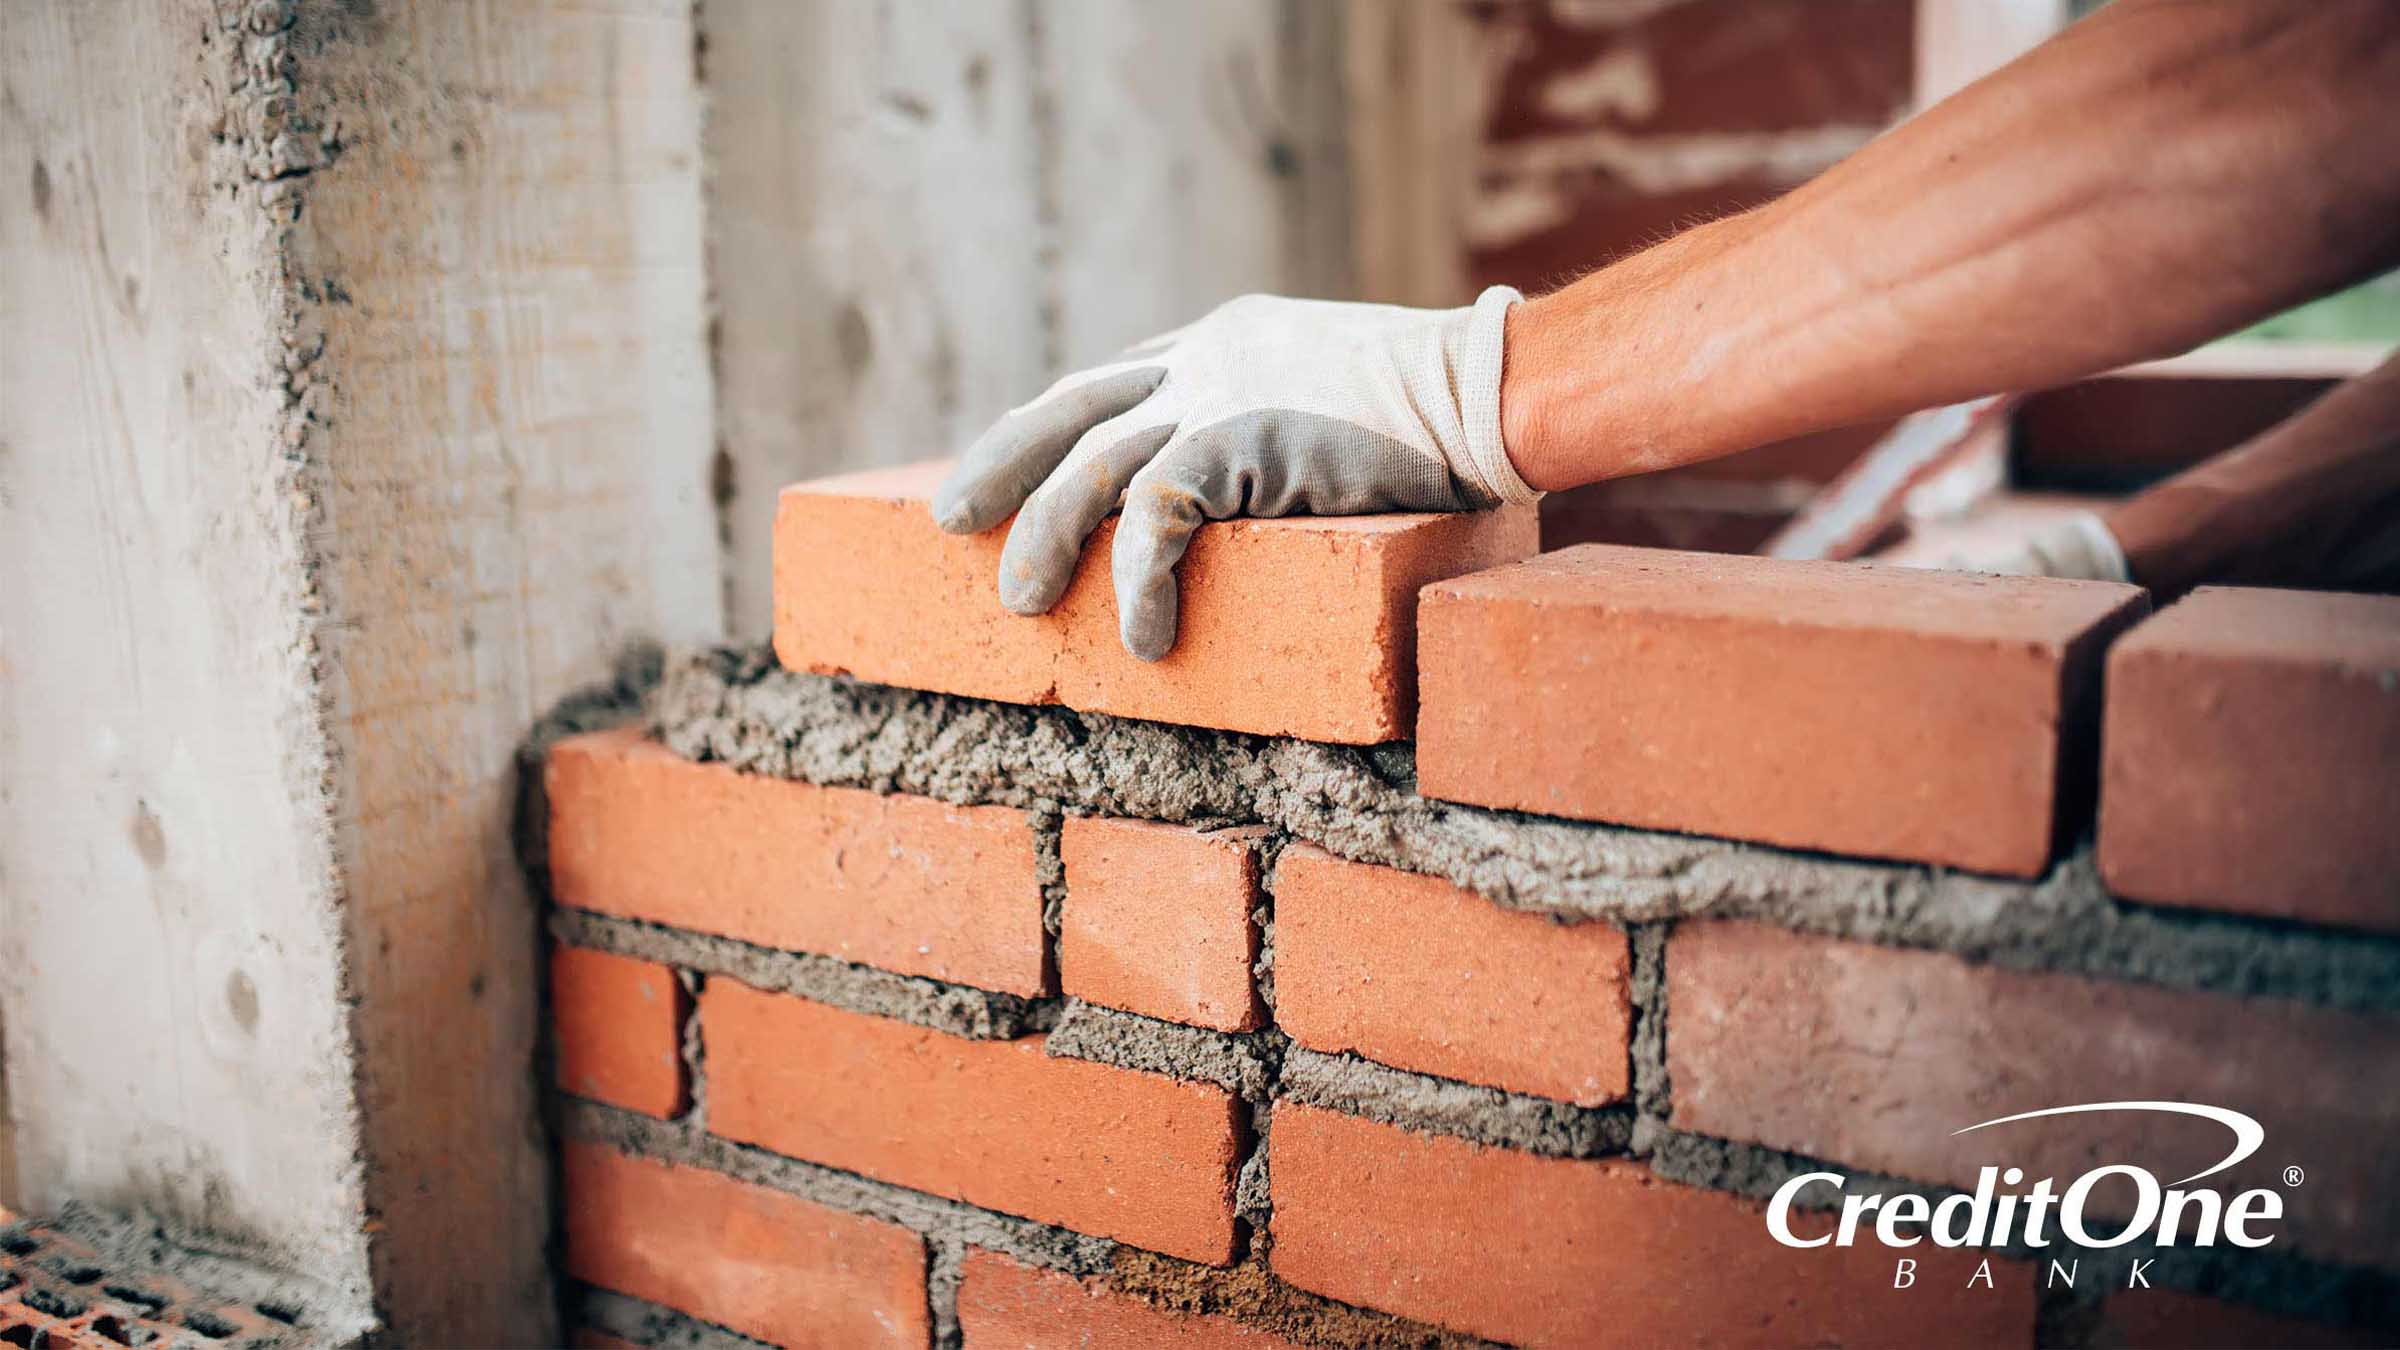 Building a solid credit foundation brick by brick